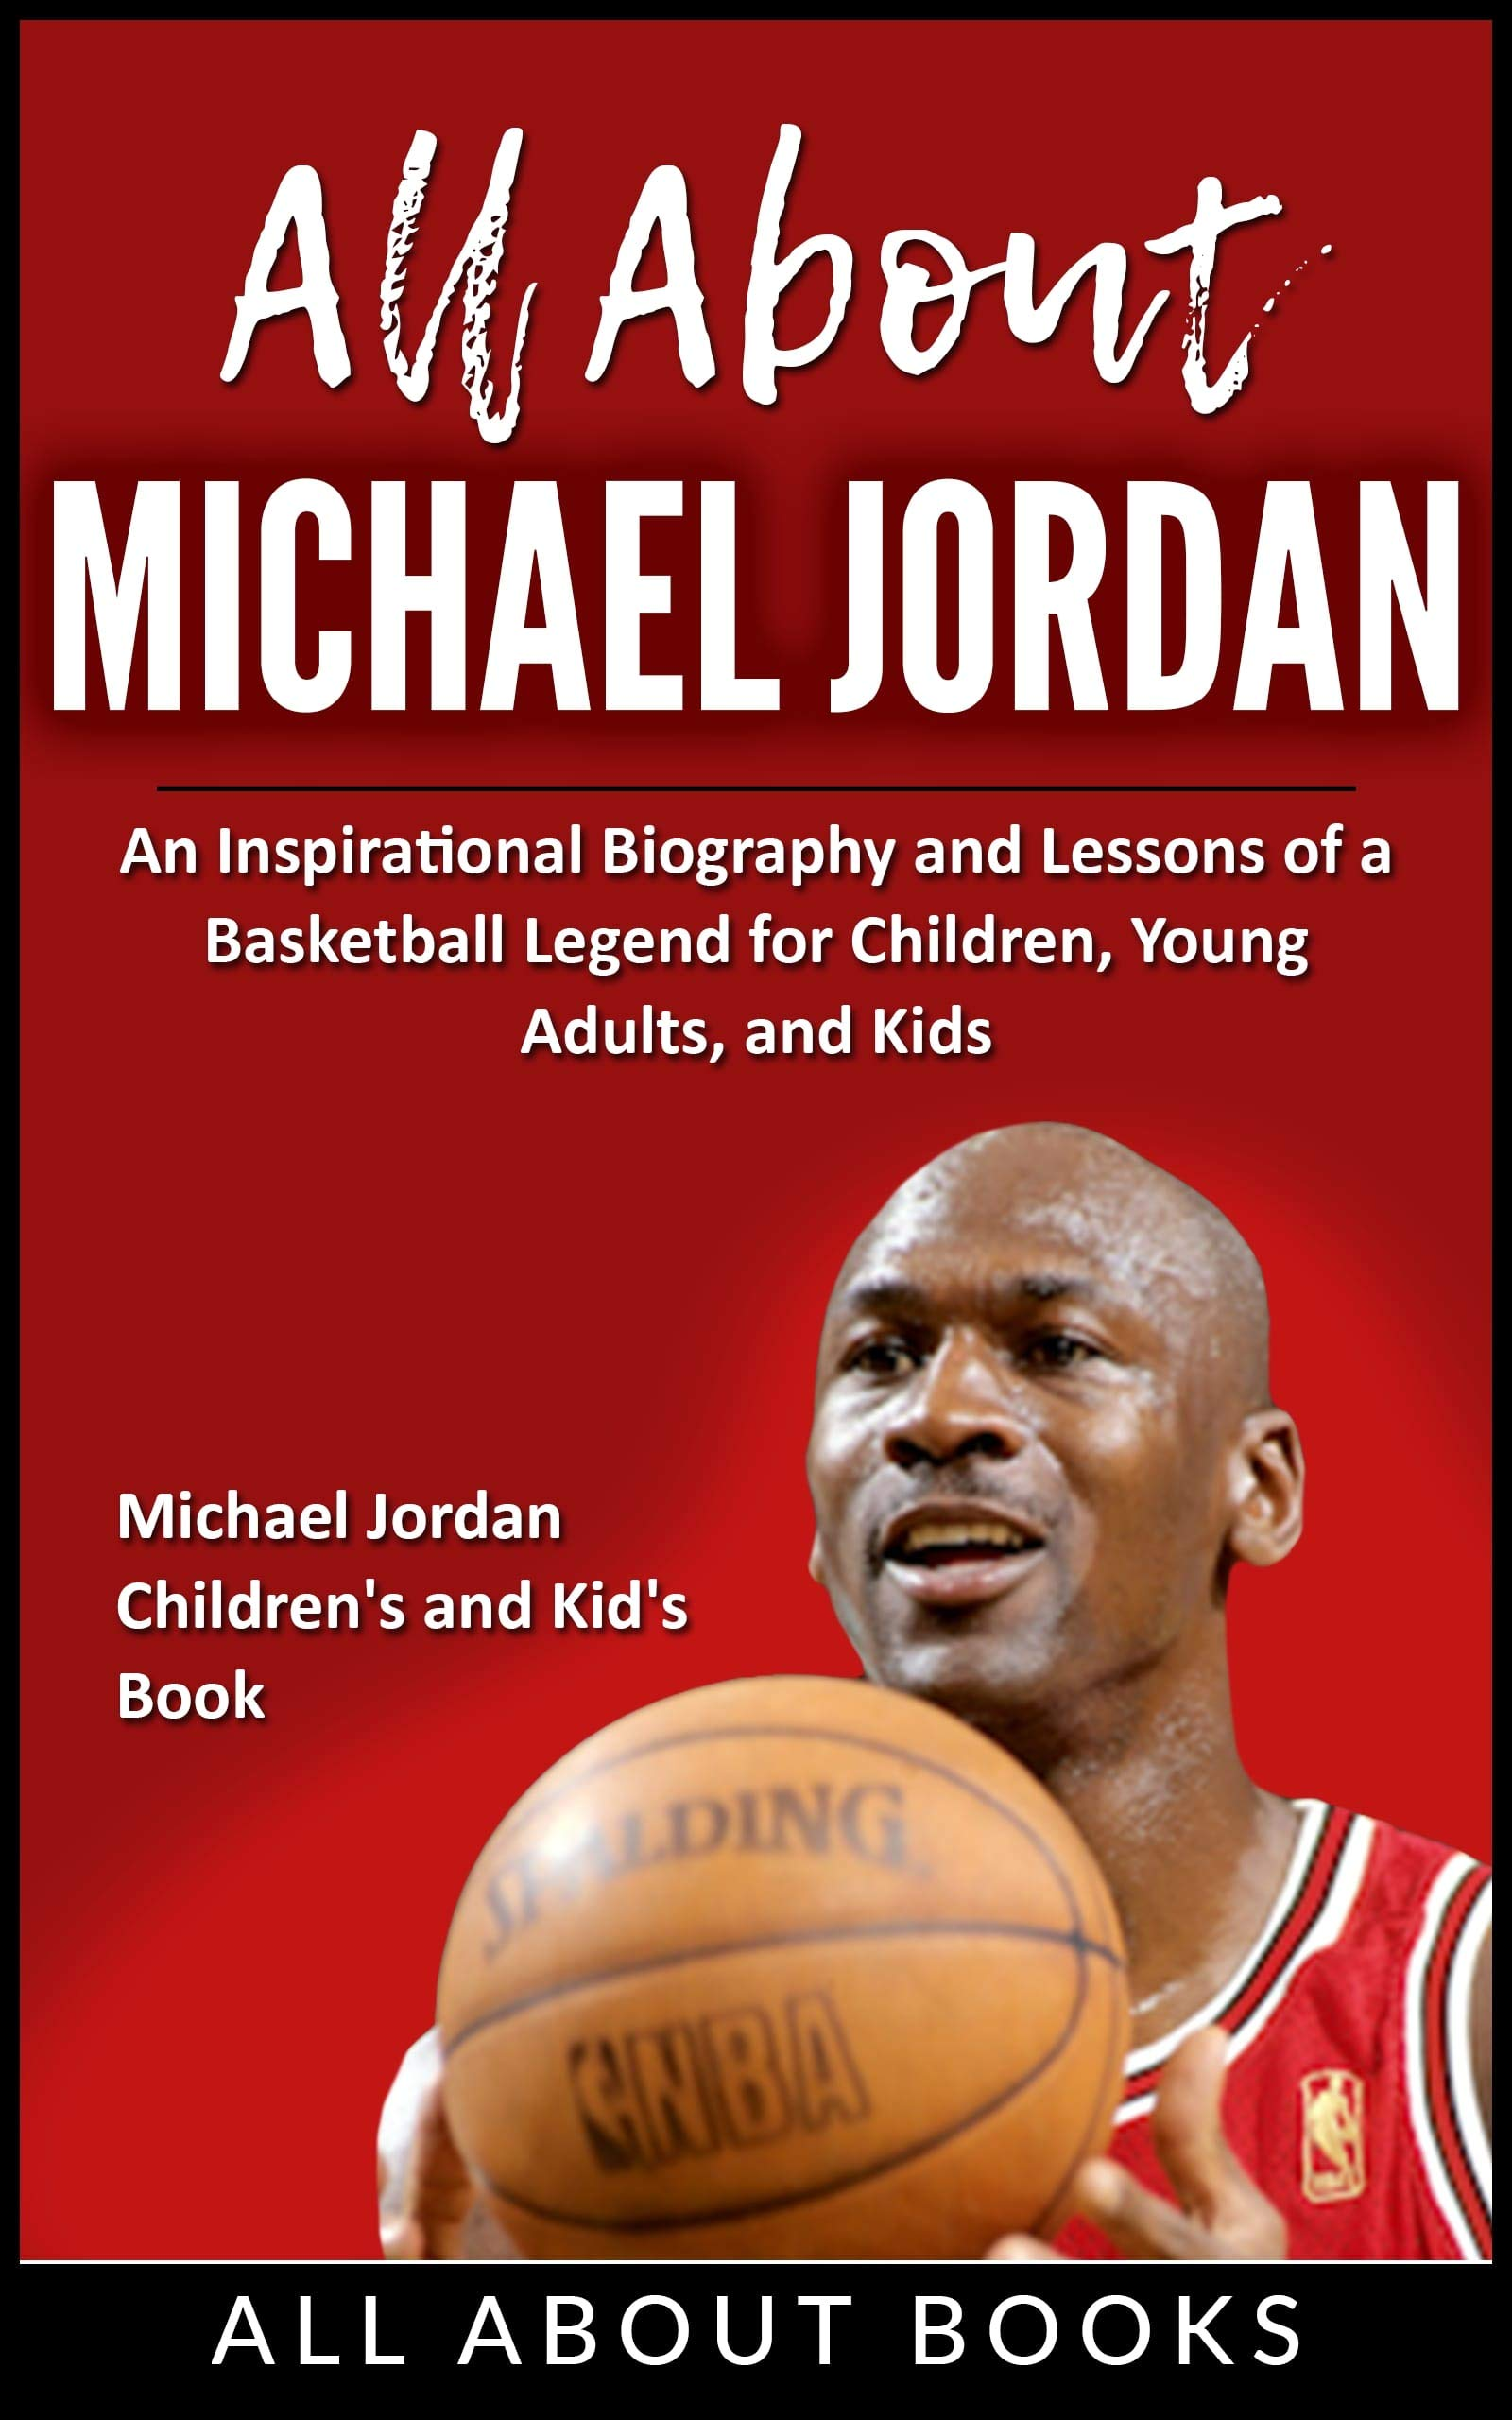 All About Michael Jordan: An Inspirational Biography and Lessons of a Basketball Legend for Children, Young Adults, and Kids (All About Books Book 2)